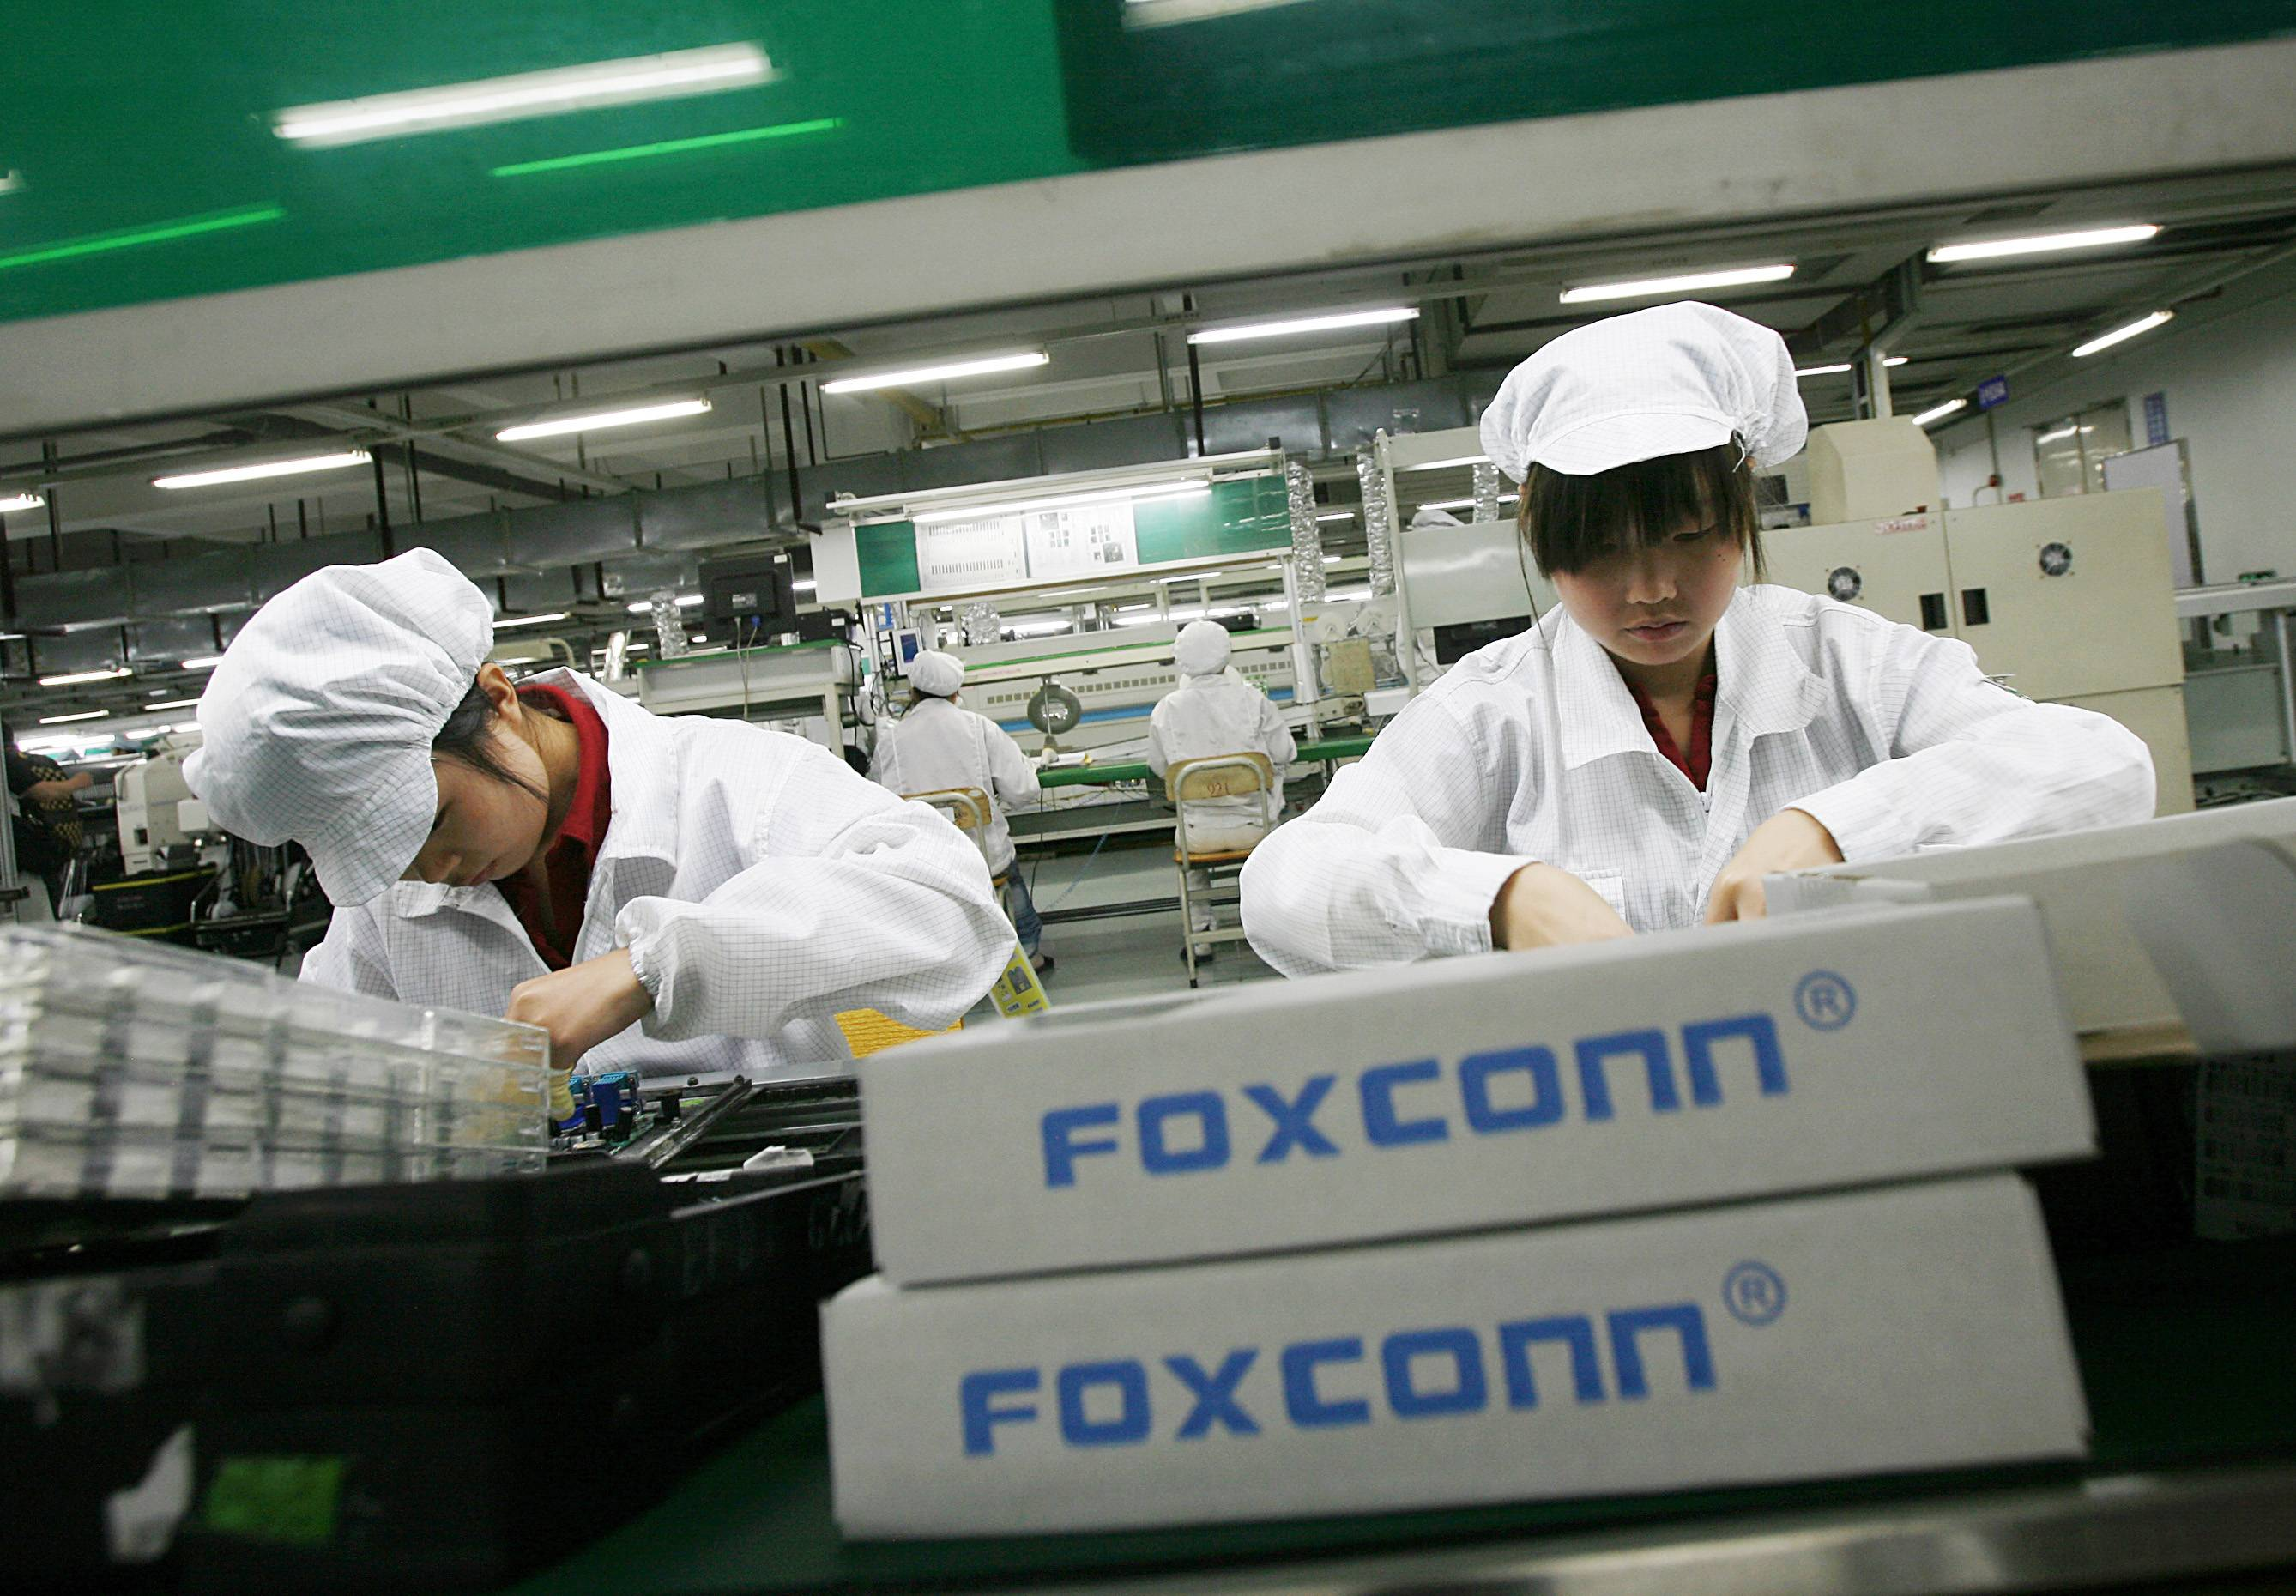 Brawl Closes Chinese iPhone Plant - Production came to a standstill at a Foxconn Technology plan in northern China after a fight broke out between two workers and escalated into a full-scale brawl involving nearly 2,000 employees. Foxconn Technology is a major supplier for Apple and has come under fire for its alleged poor working conditions.(Photo: Bobby Yip/REUTERS)